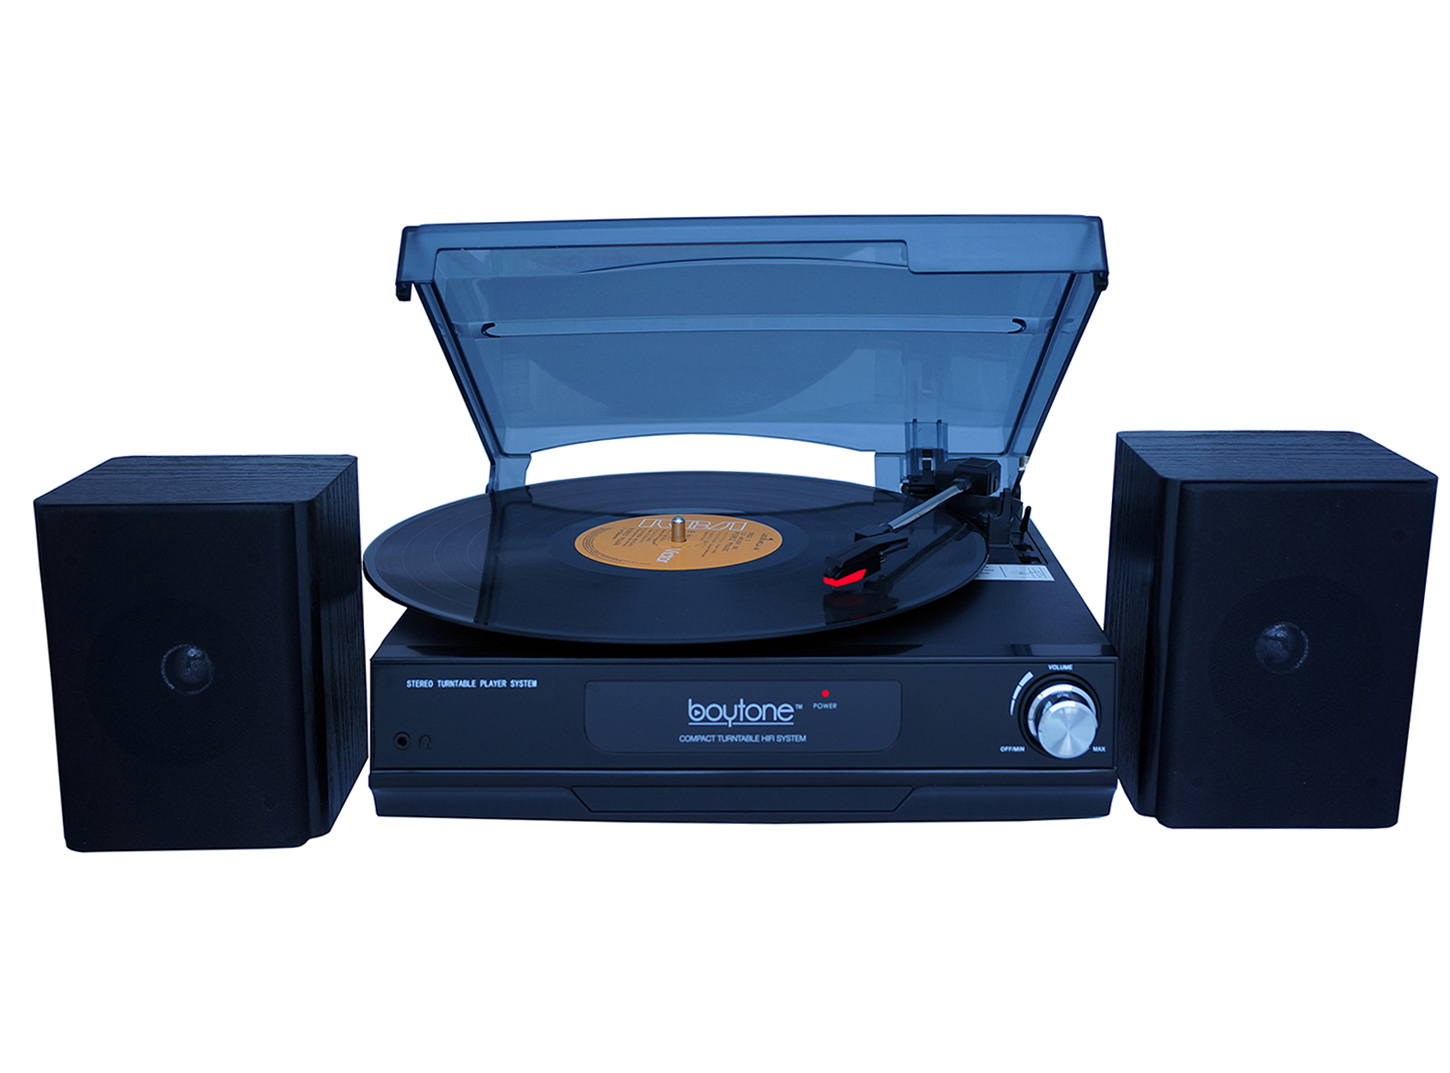 Boytone BT-14TBB-SP 3 Speed Stereo 33/45/78 RPM Turntable with 2 detachable Speakers